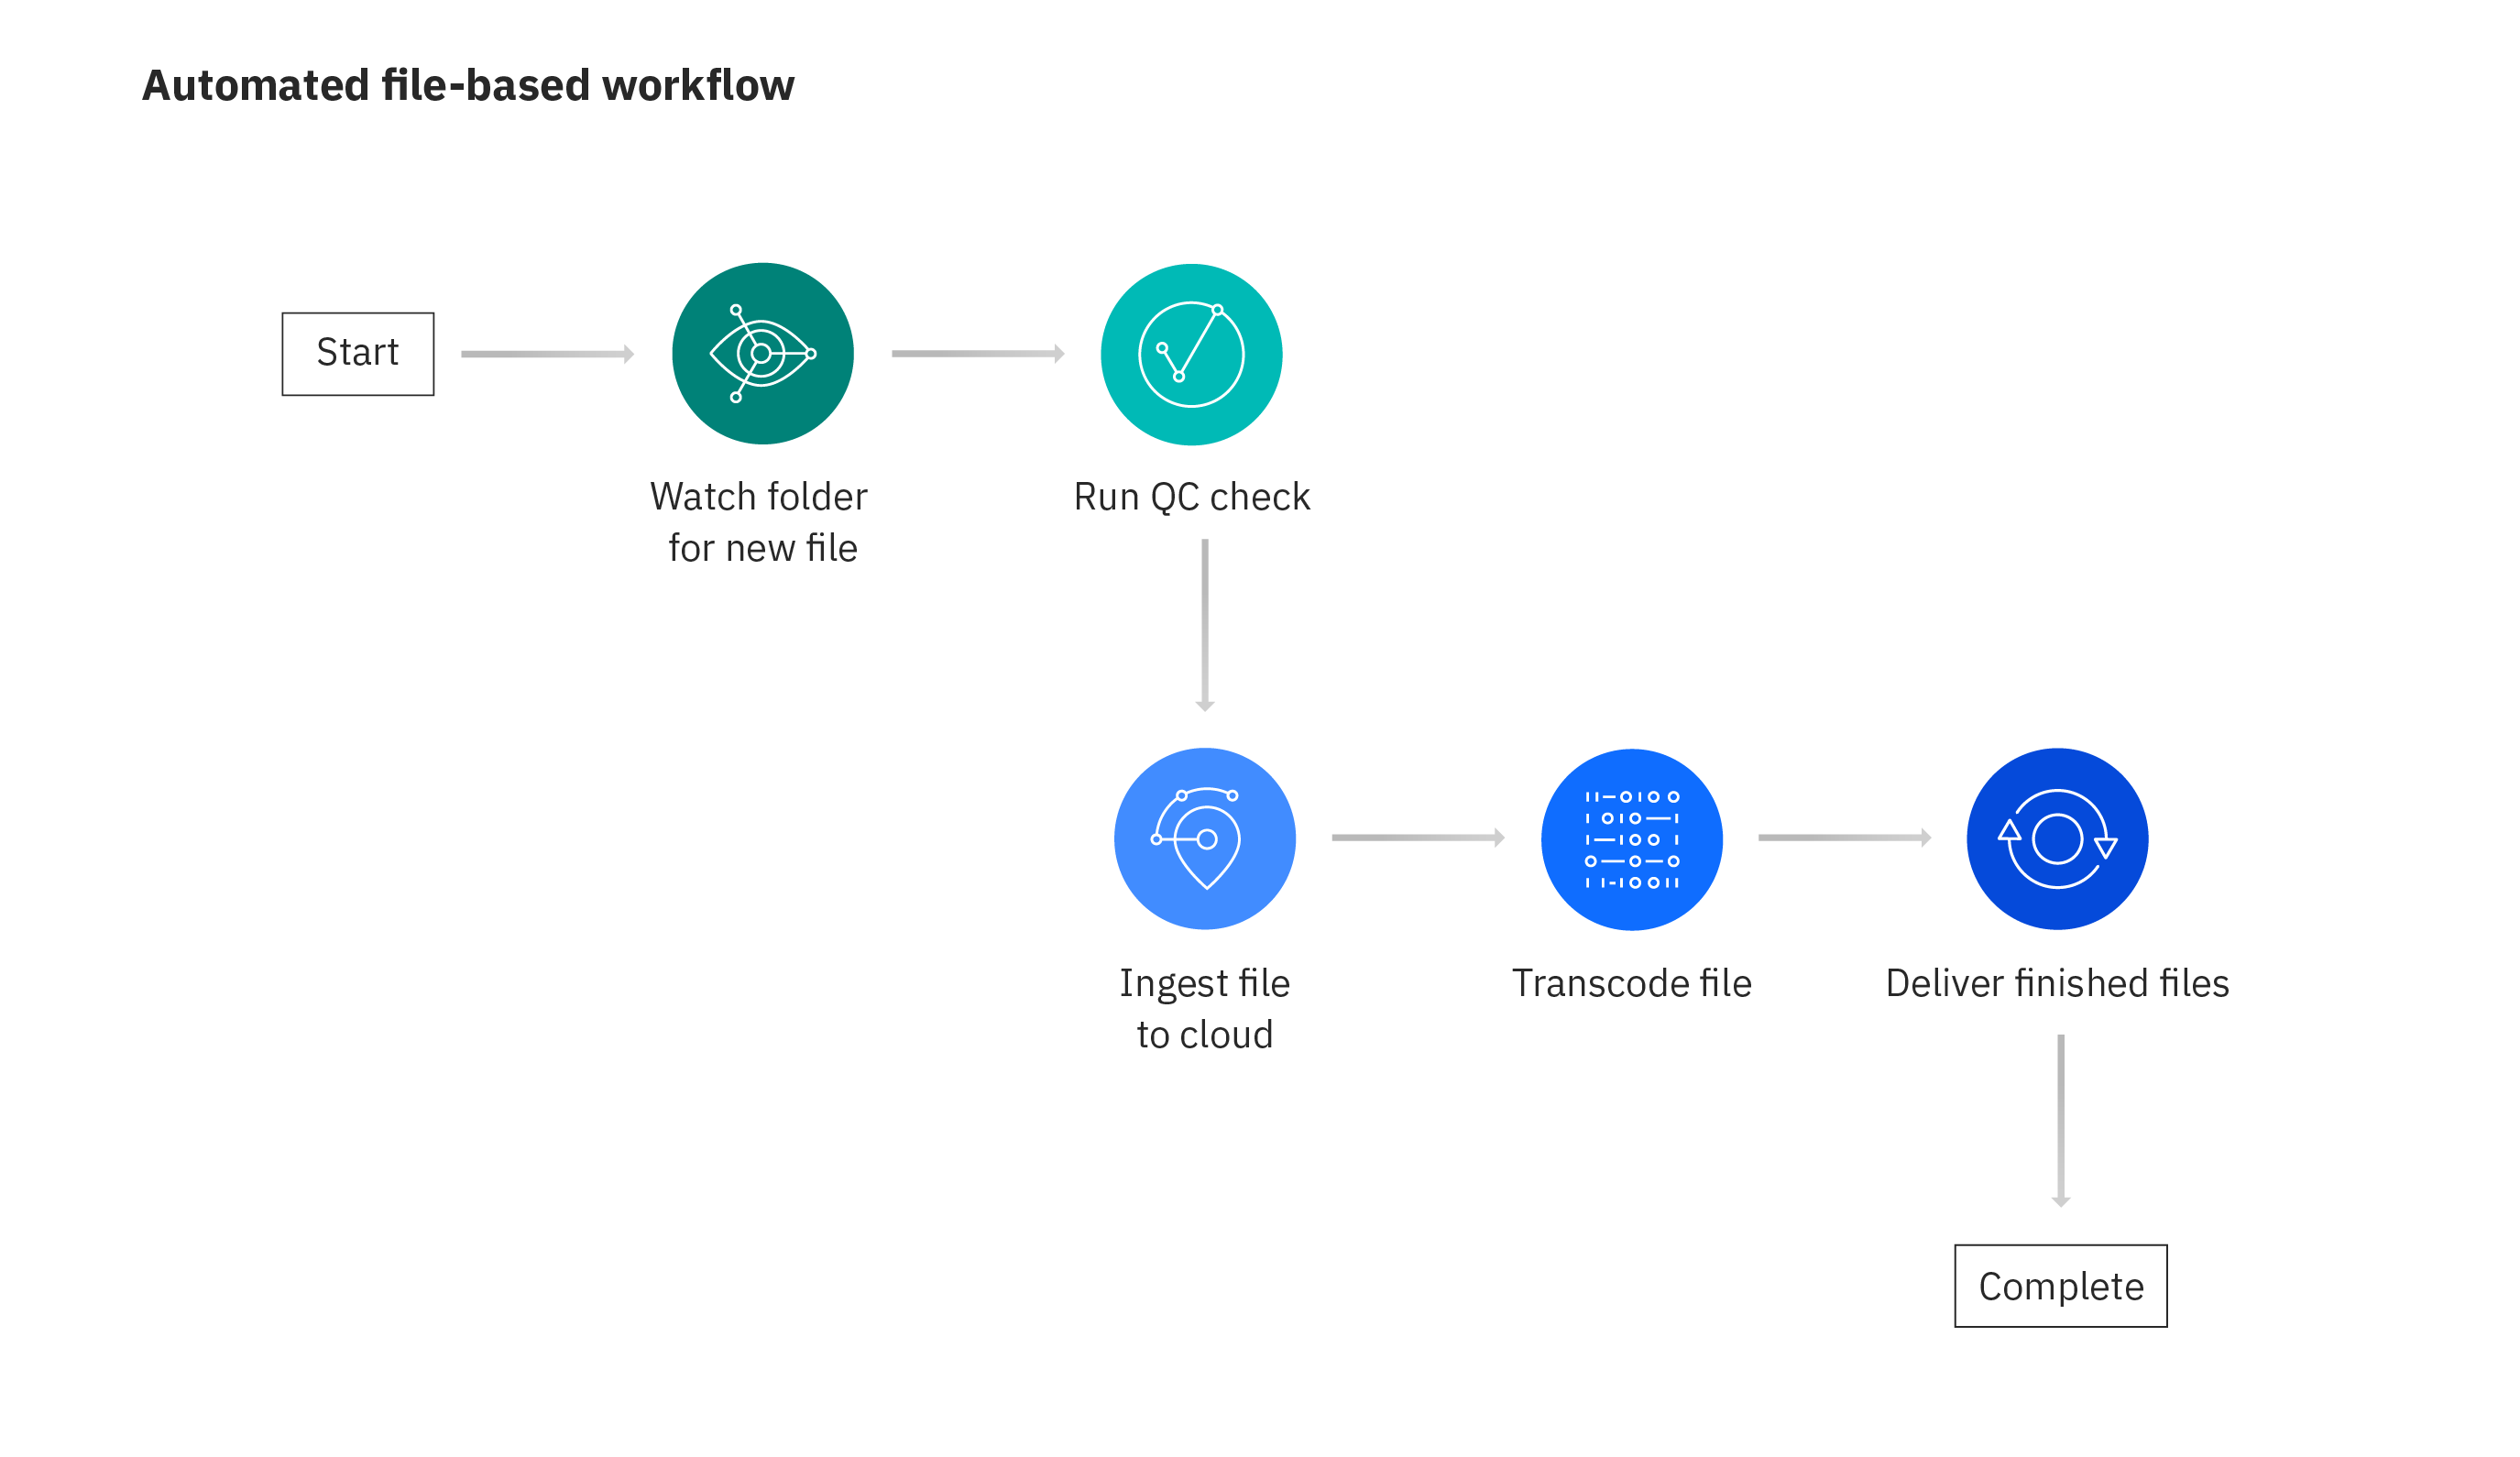 Diagramm, wie Aspera dateibasierte Workflows automatisiert